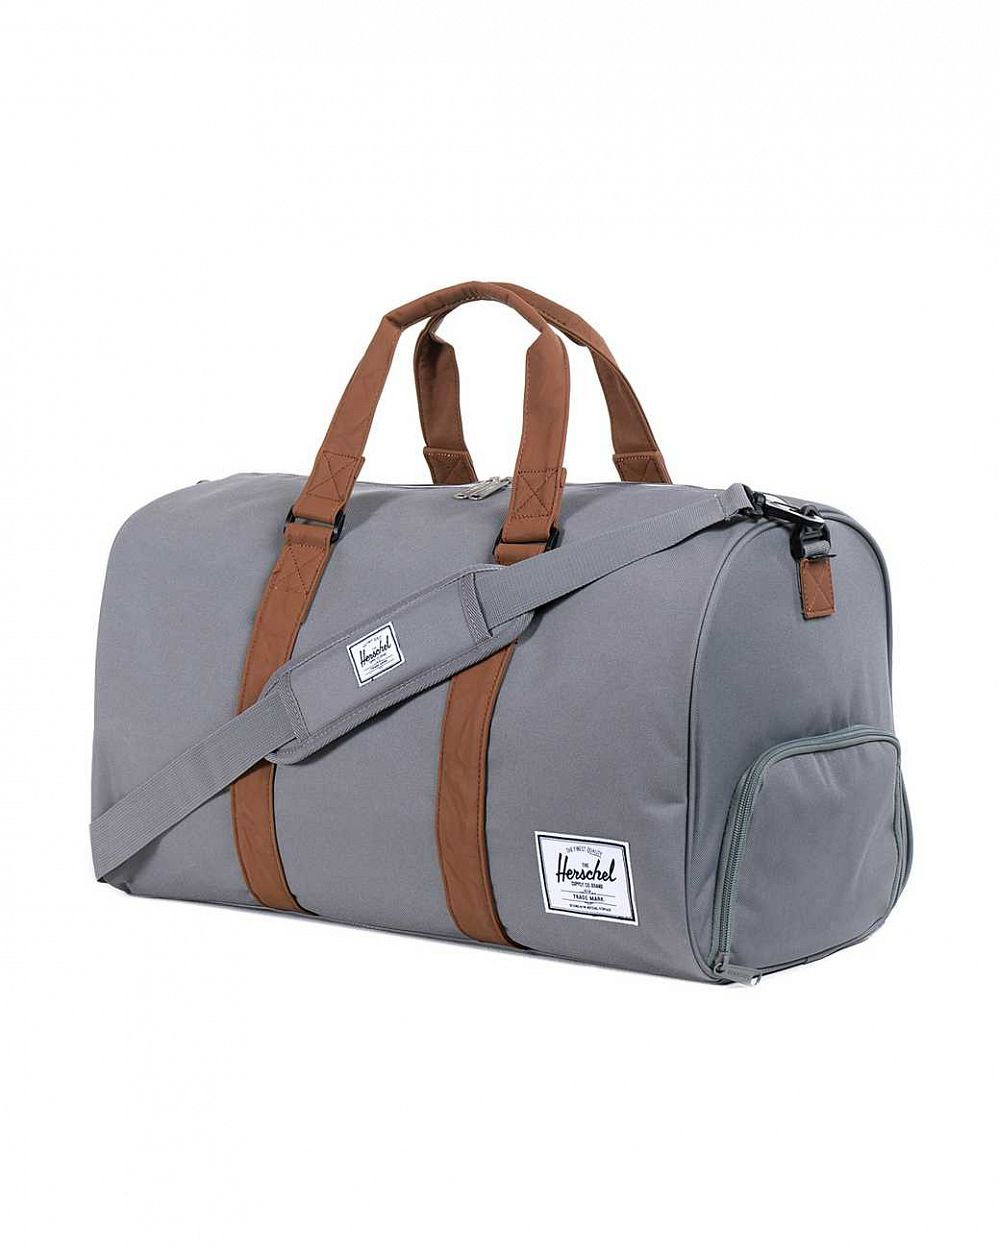 Сумка спортивная Herschel Novel Grey Tan цена в Москве